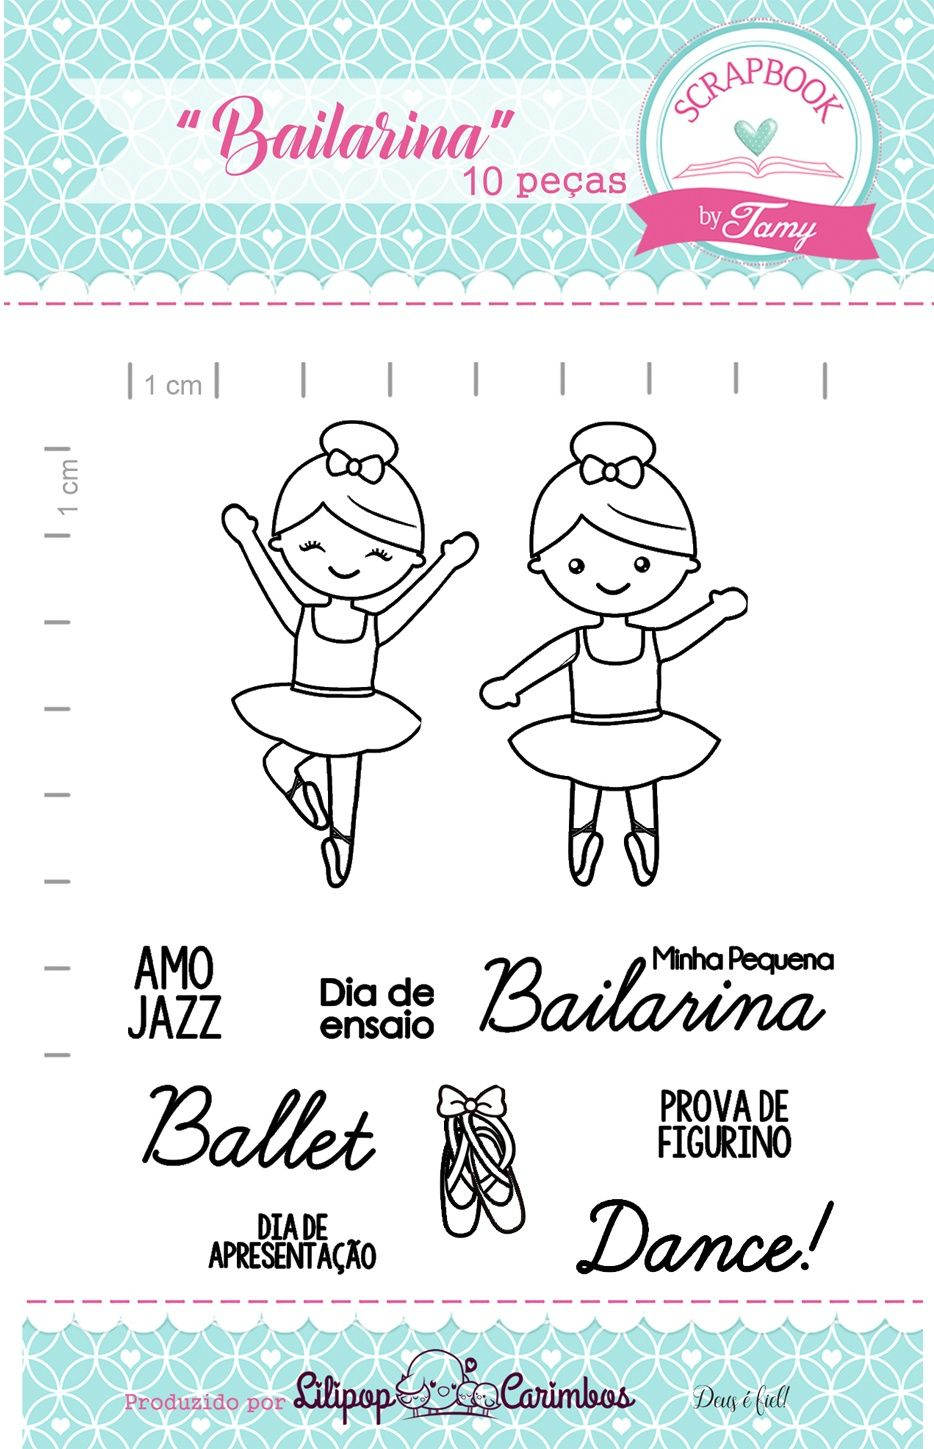 Kit de Carimbos - Bailarina - Scrapbook by Tamy